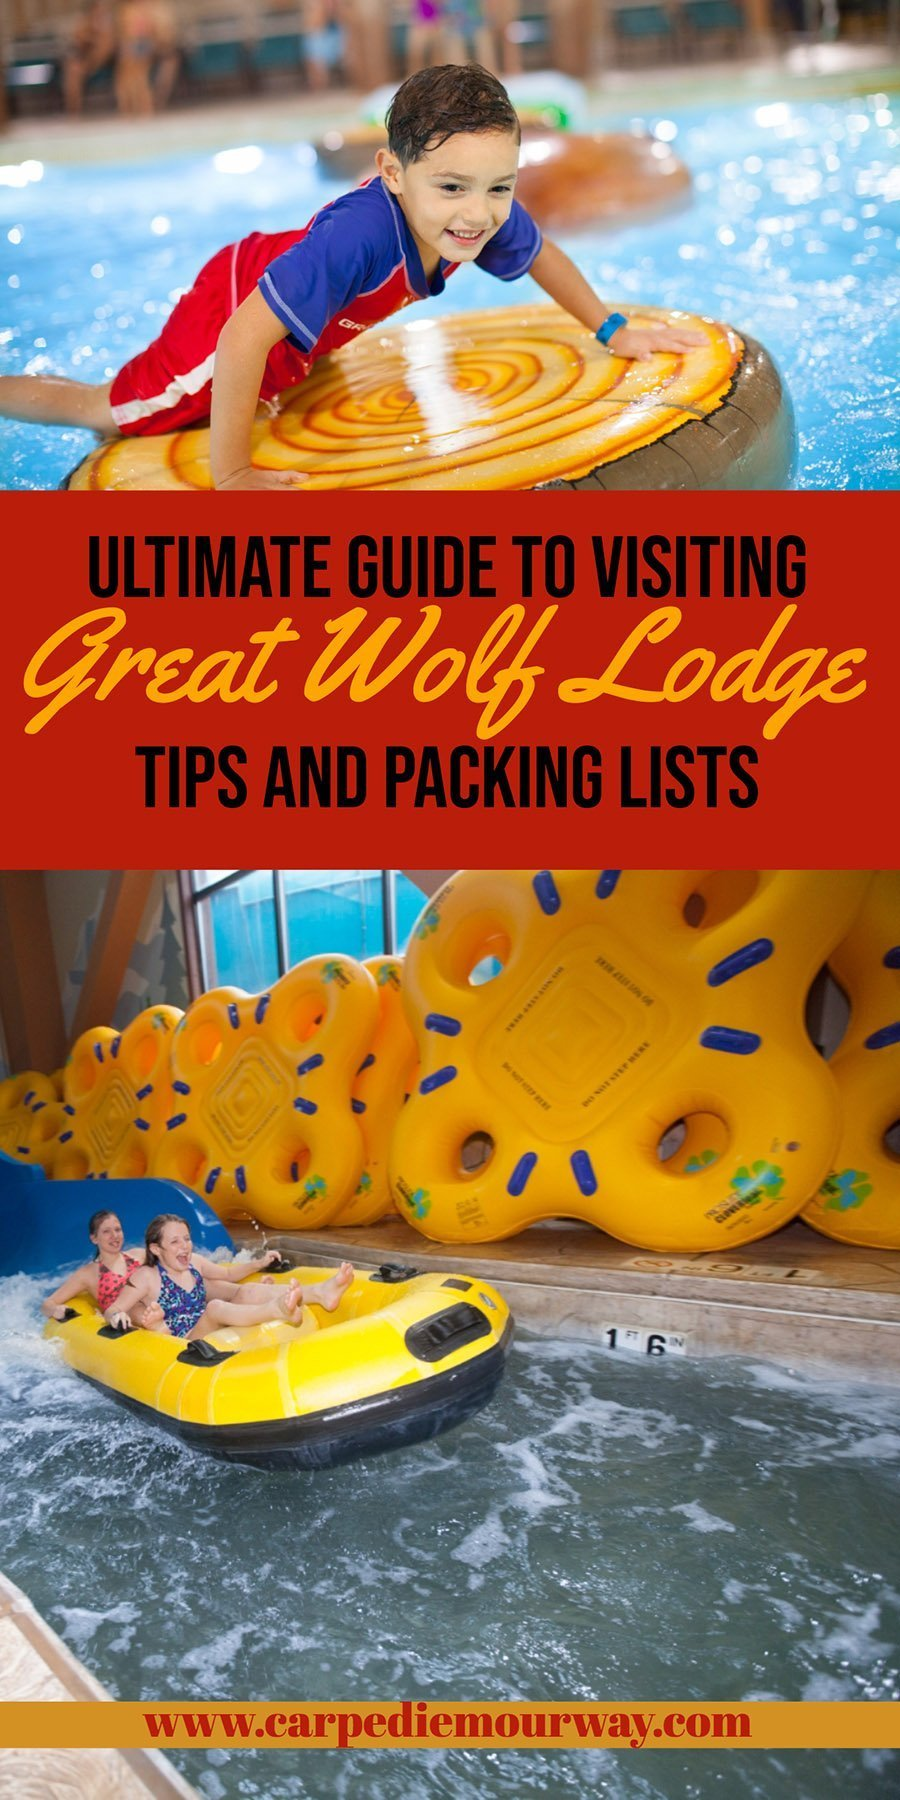 What to Bring to Great Wolf Lodge Packing list